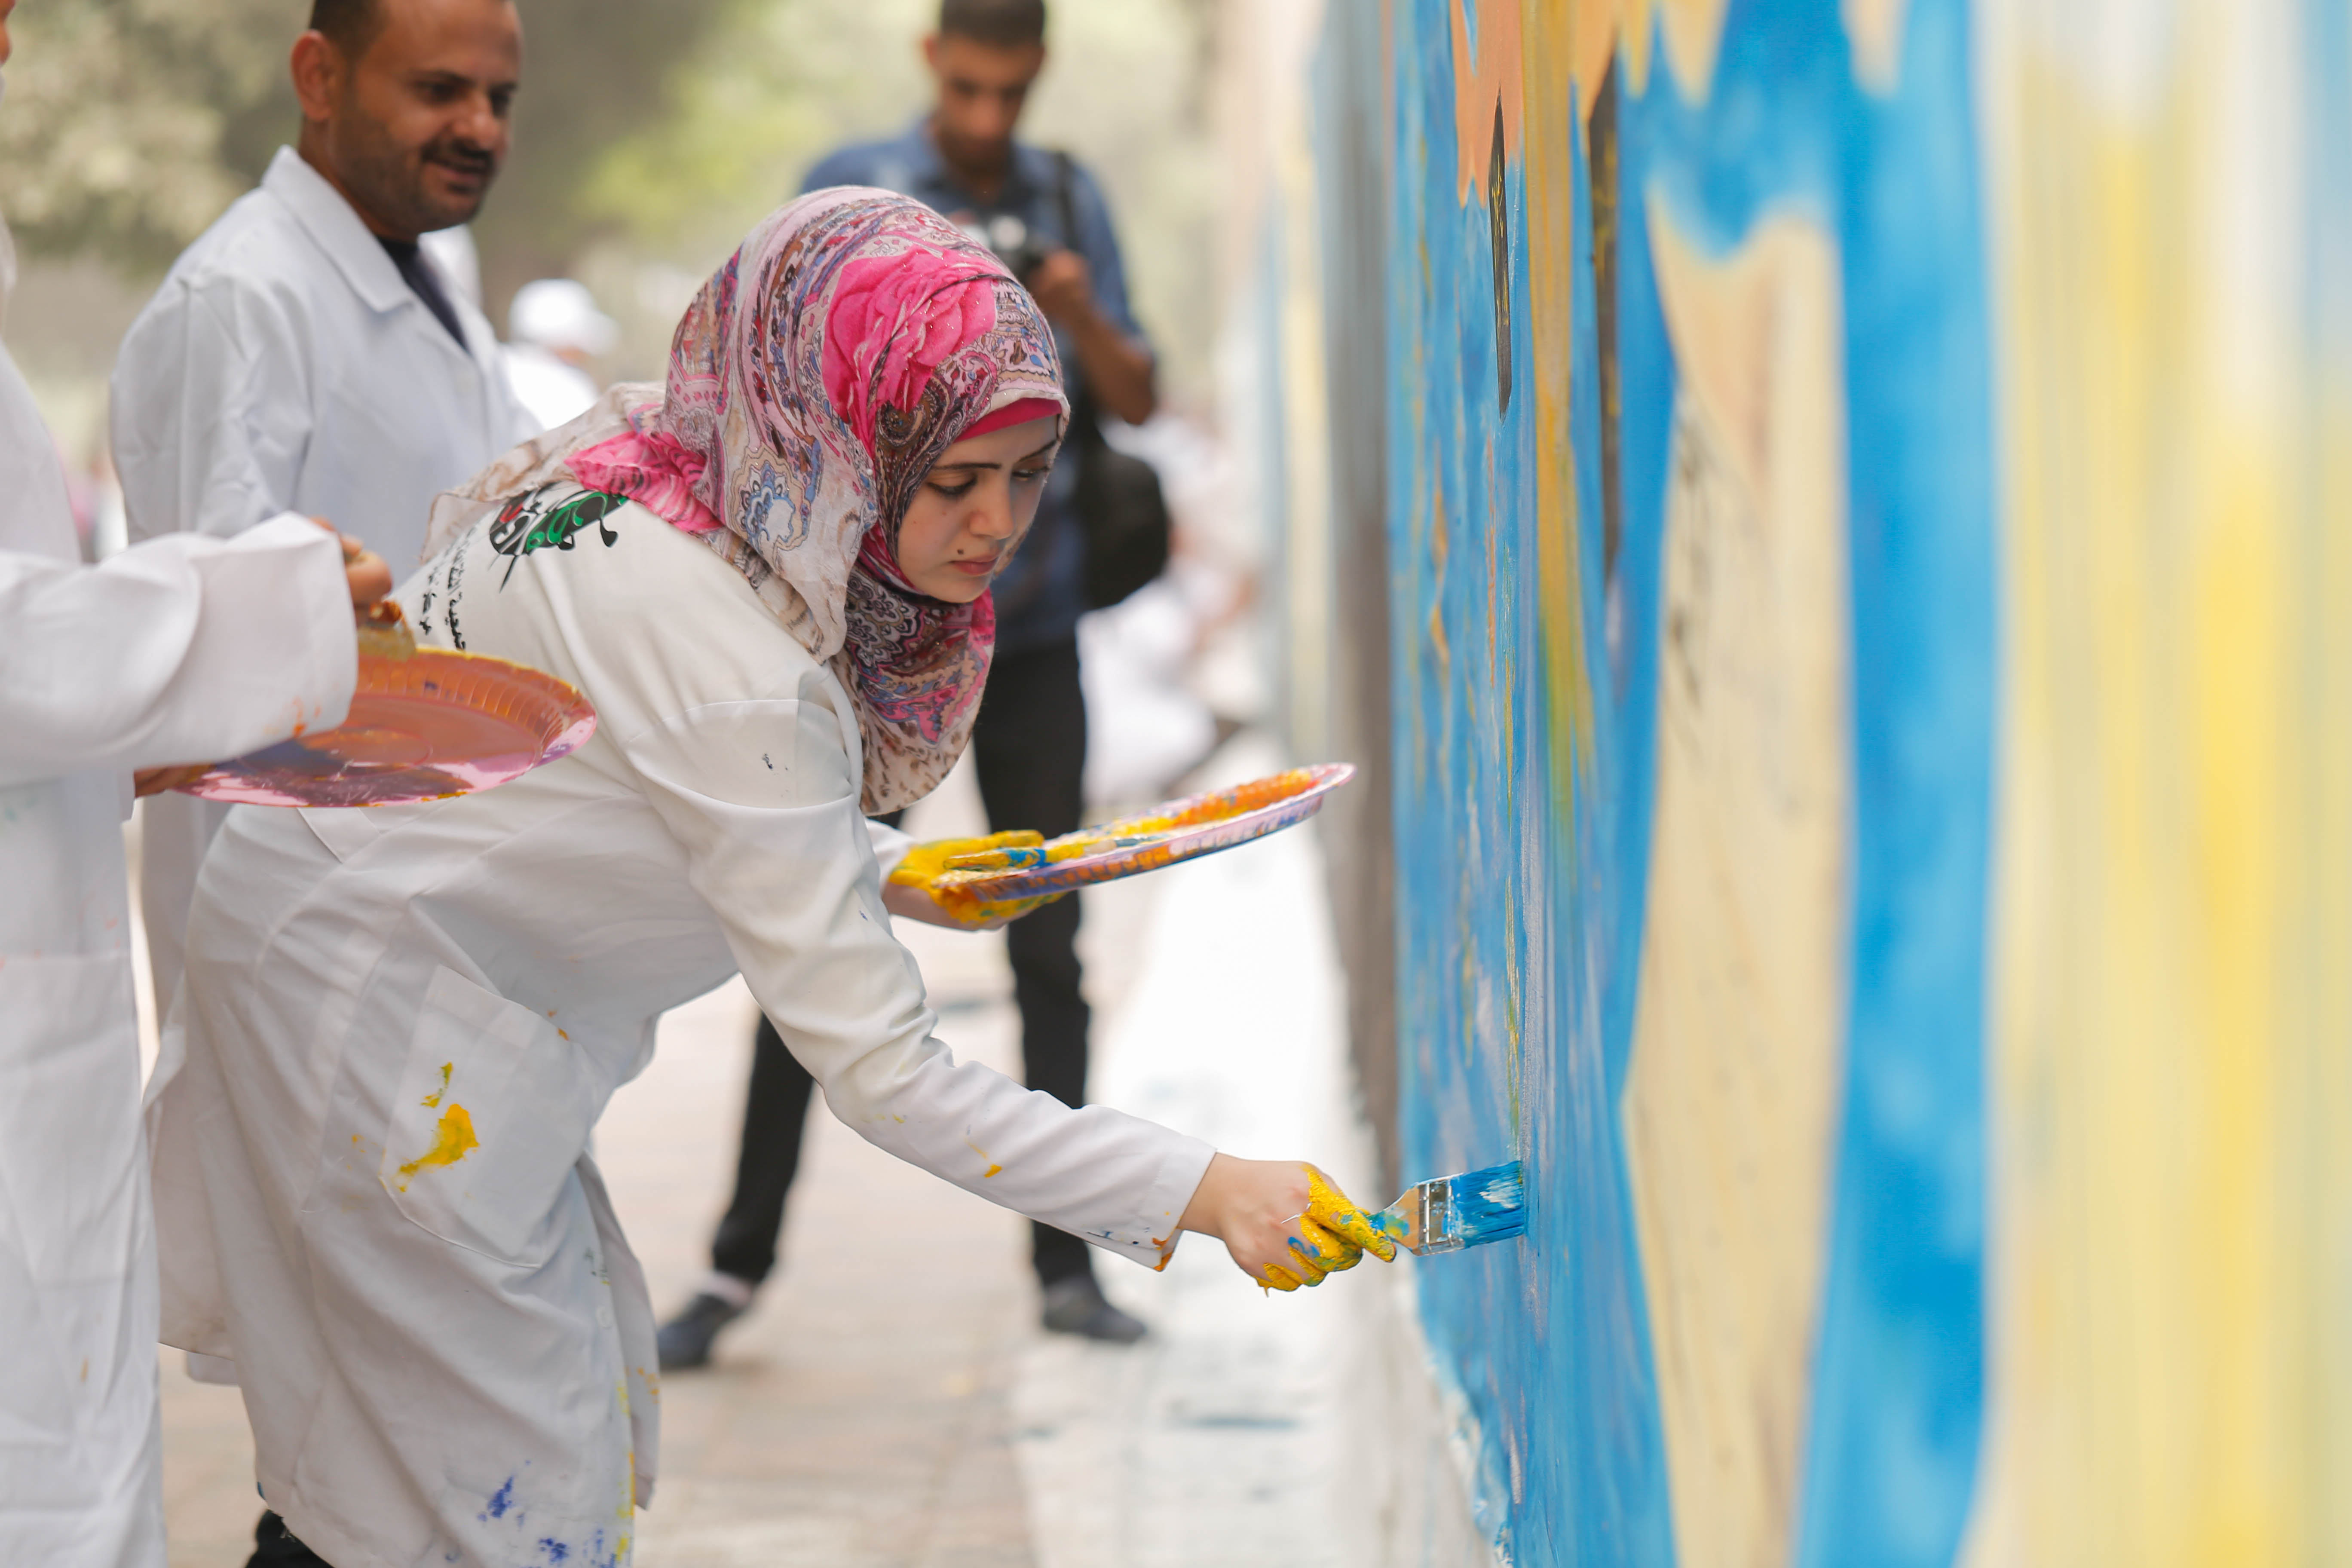 Young Palestinian women and men painting the largest mural in Palestine during the 2015 International Youth Day